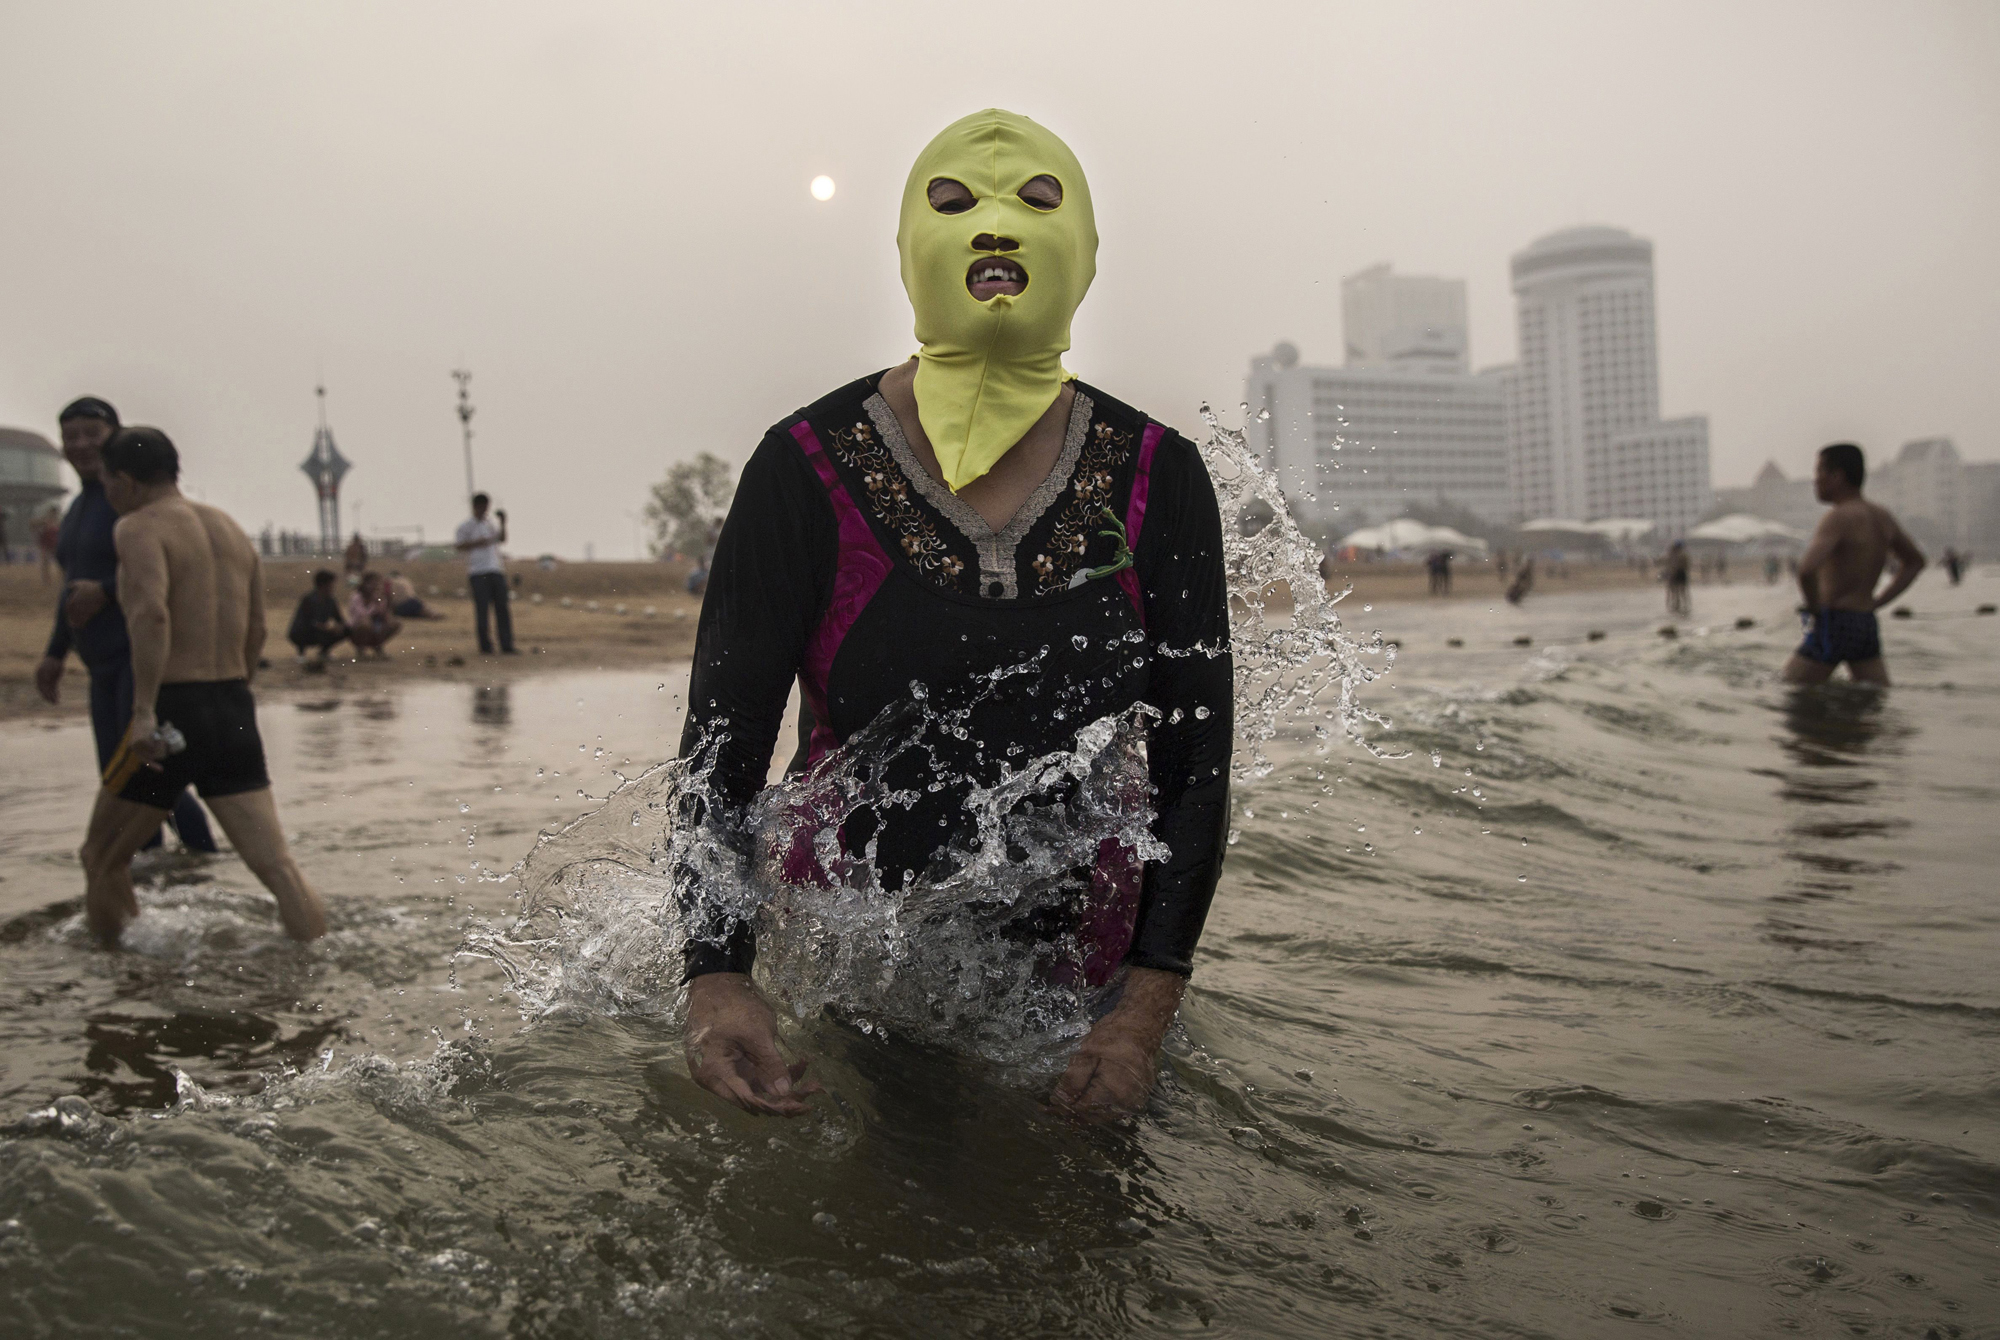 A woman wears a facekini as she gets wet before swimming on Aug. 22, 2014, on the Yellow Sea in Qingdao.